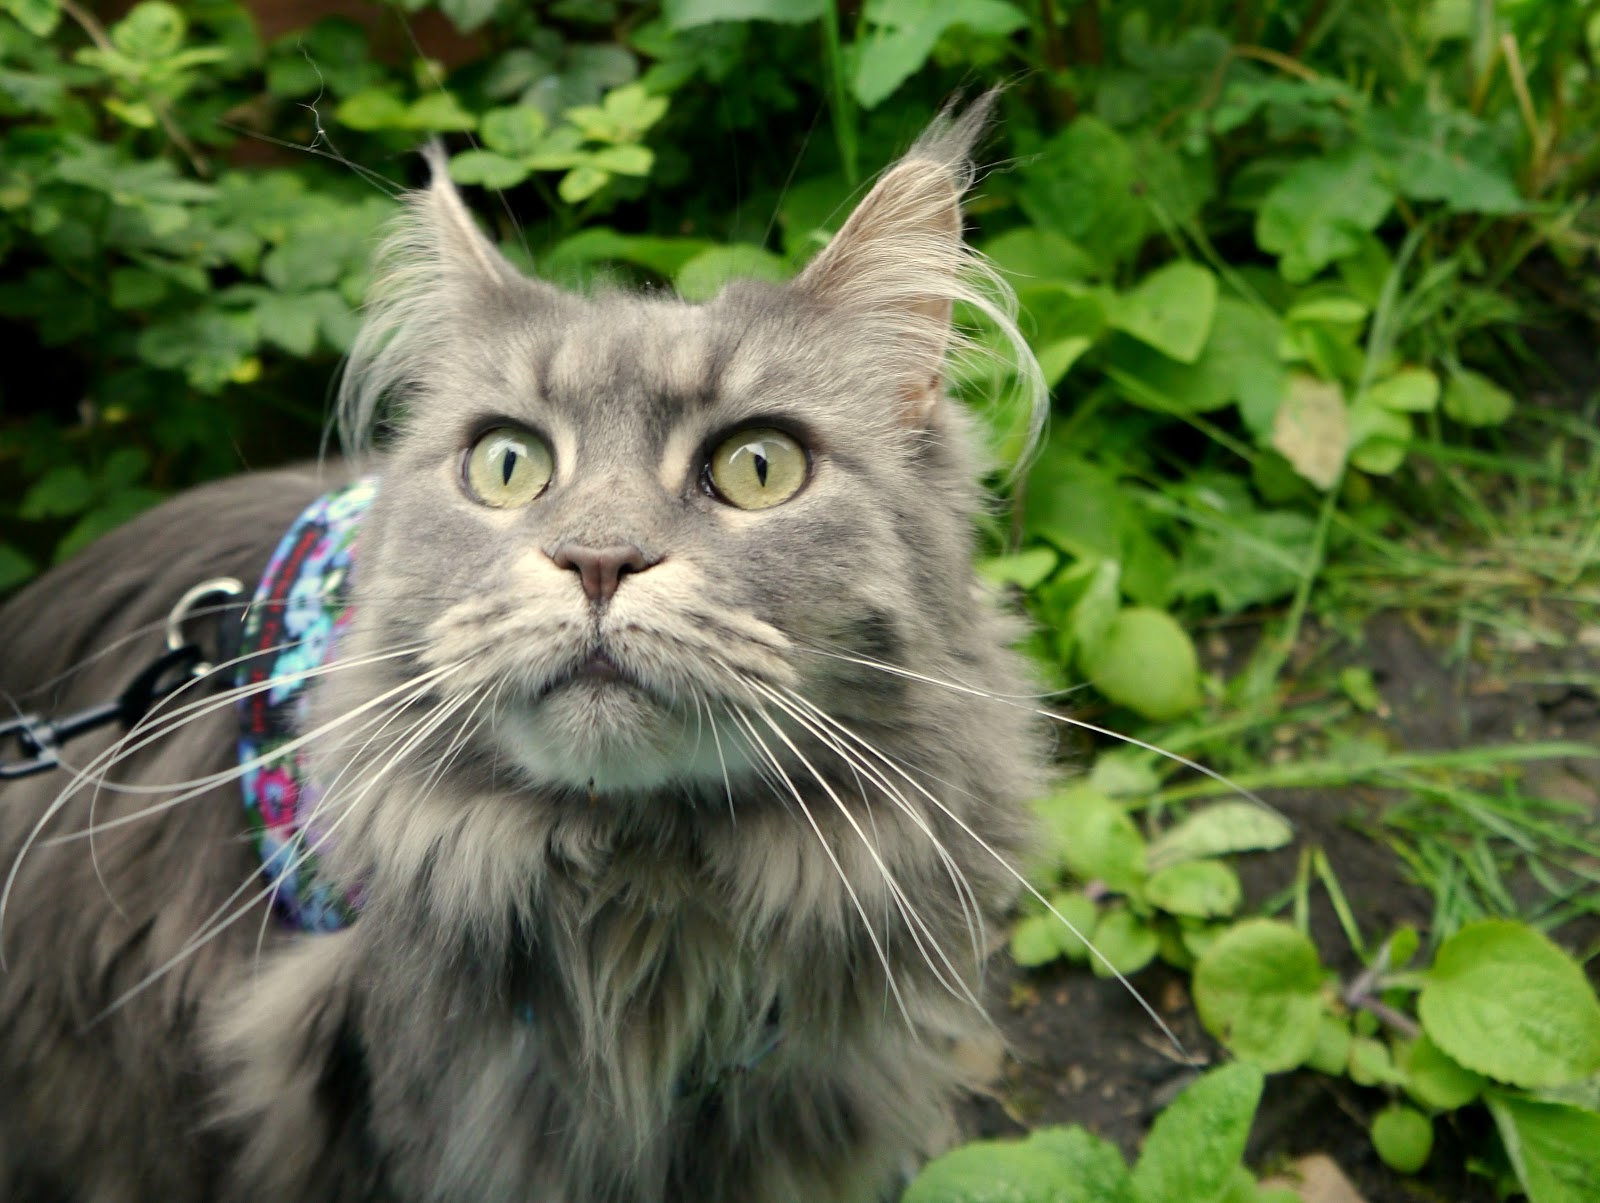 Wild Kitty 5, 30 May 14 by Castaway in Scotland from flickr (CC-NC)